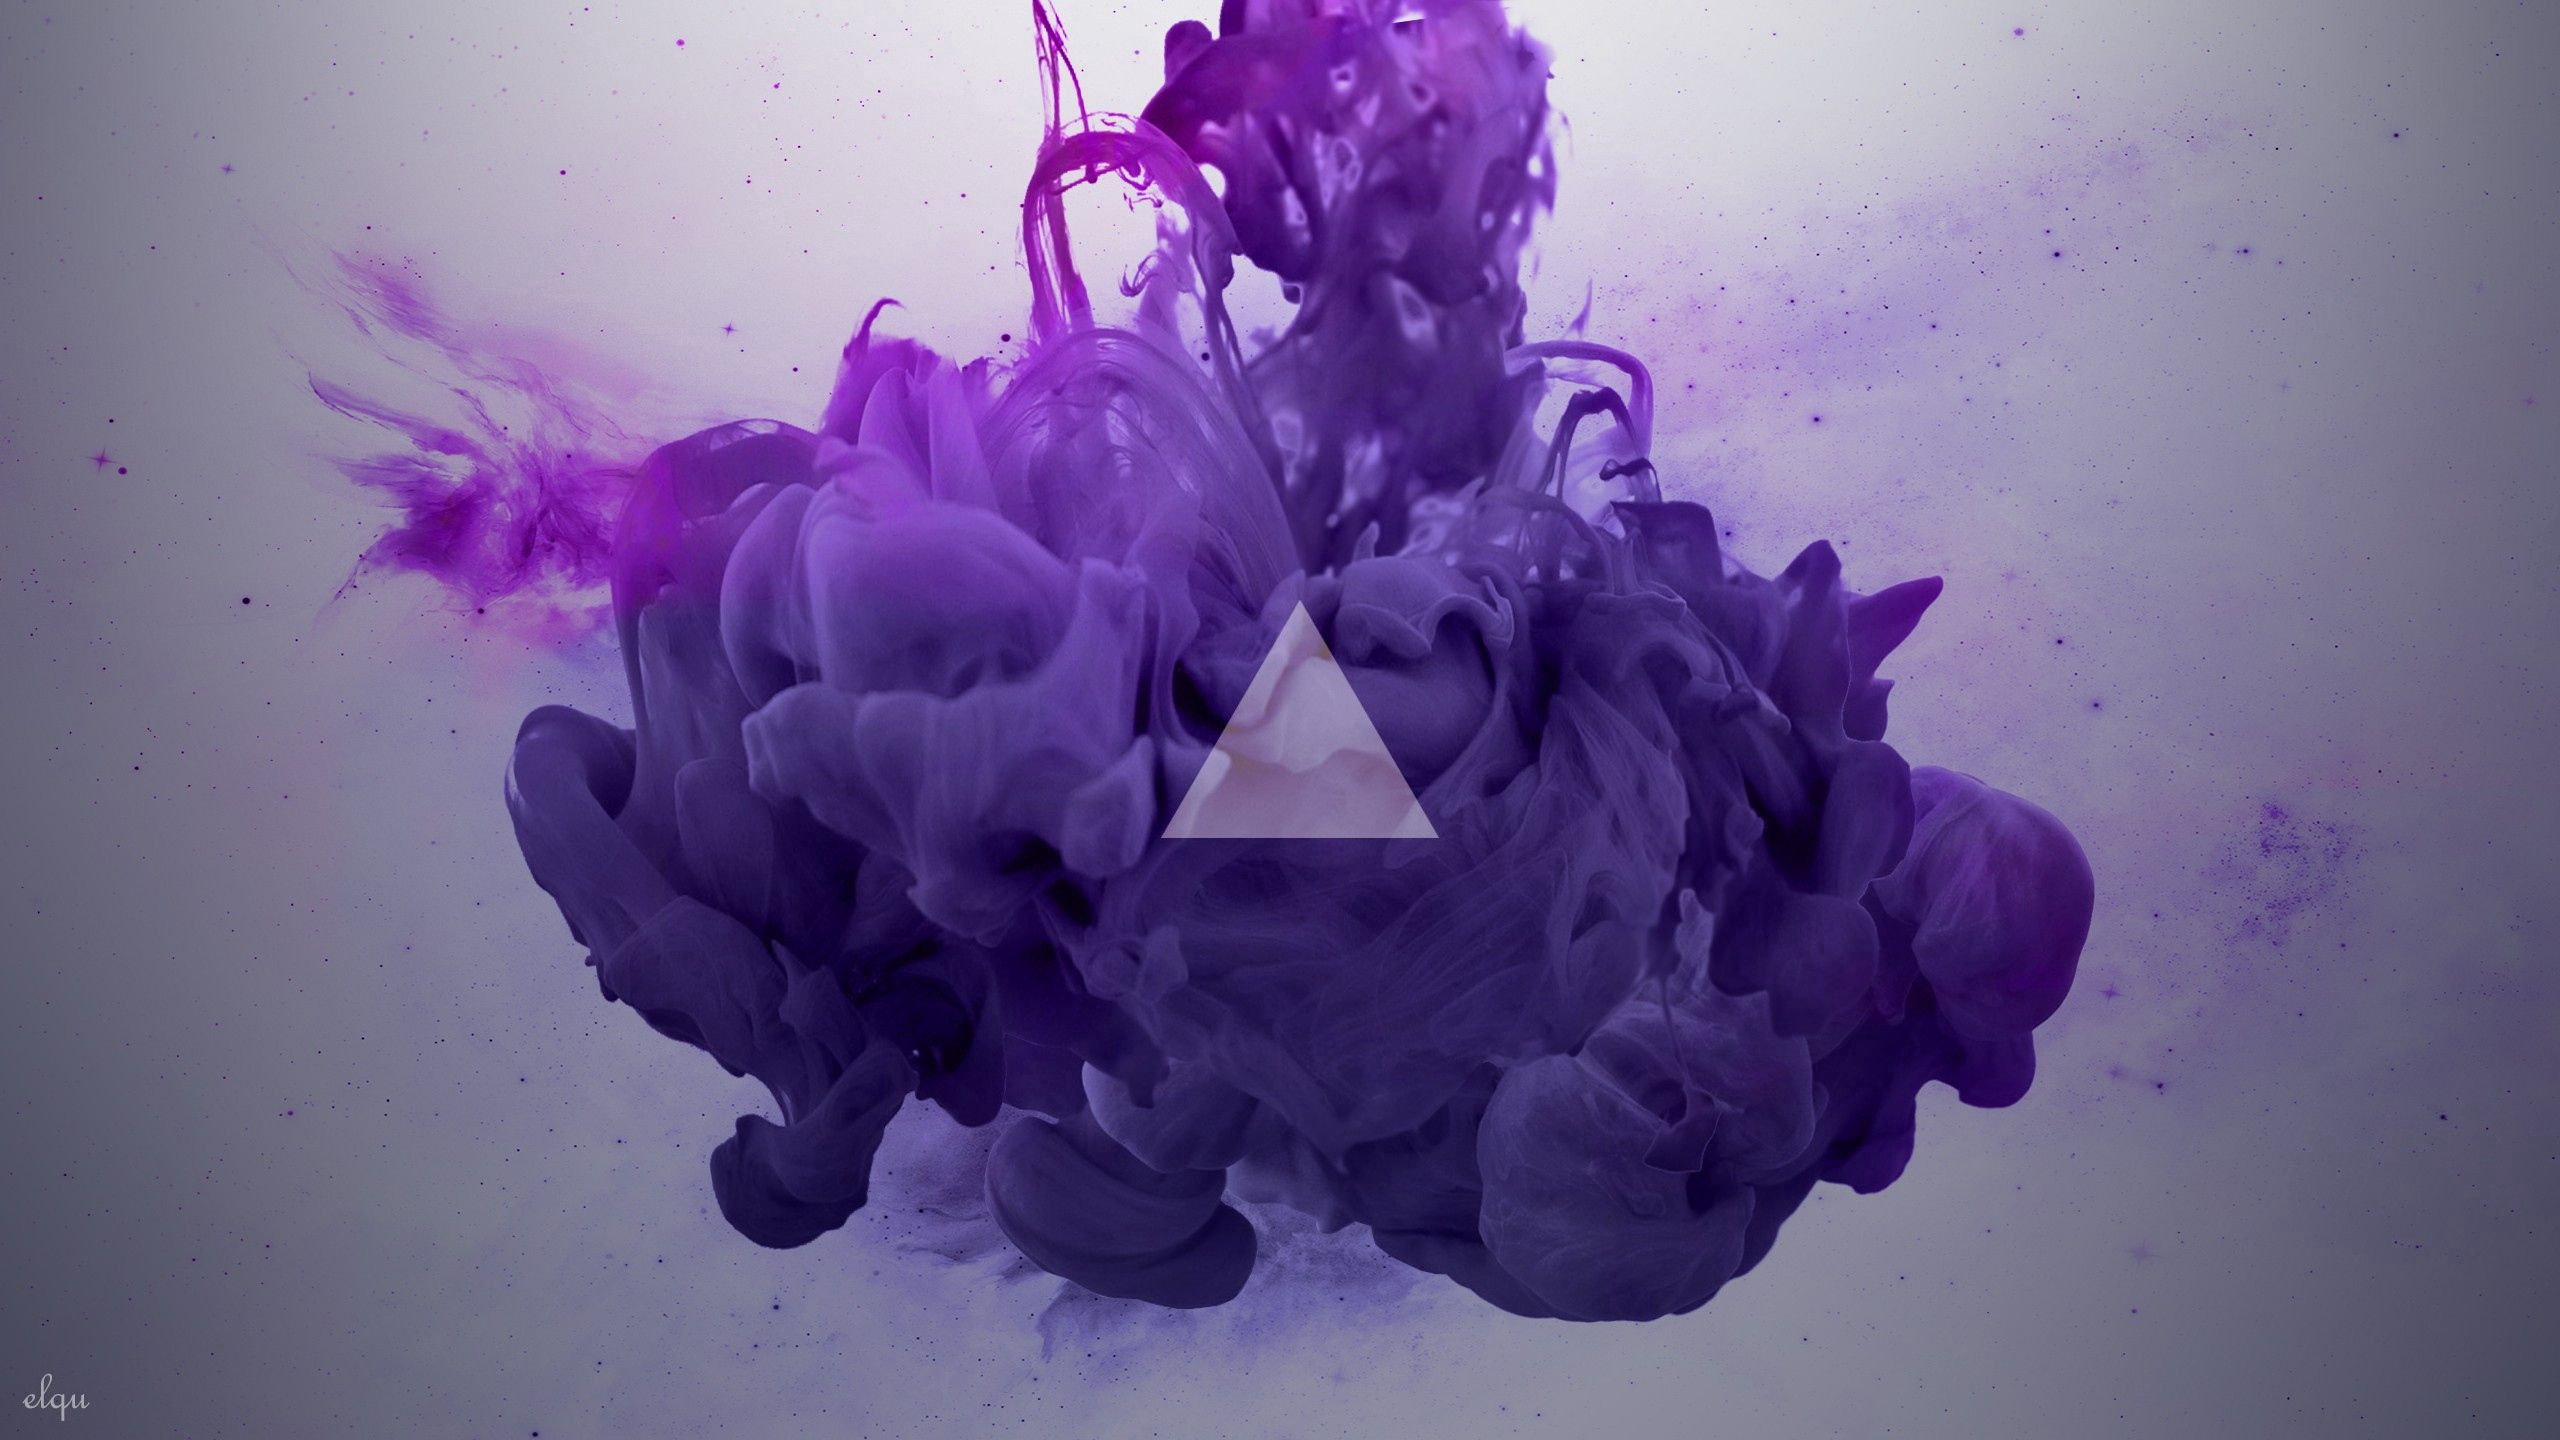 109429 download wallpaper Abstract, Smoke, Lilac, Triangle screensavers and pictures for free